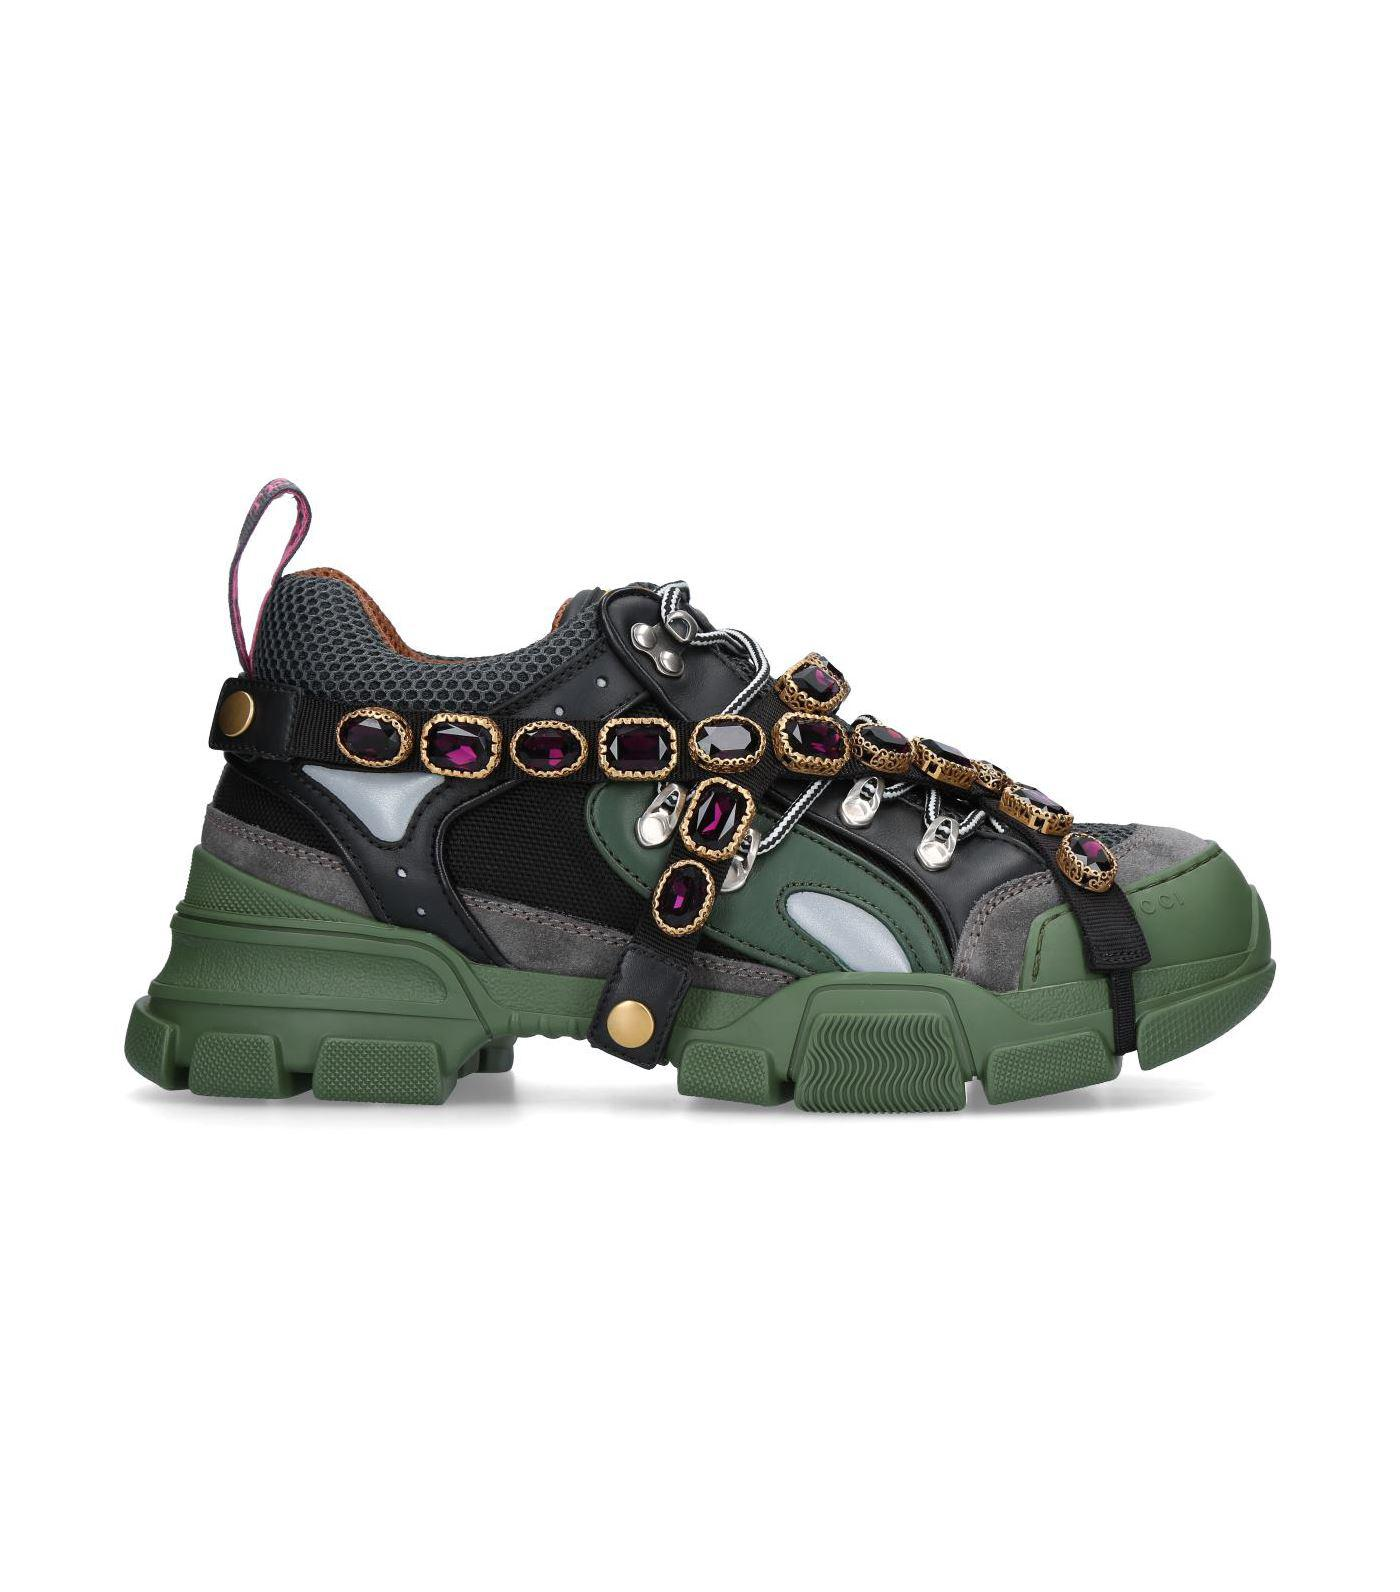 9dd8f3bc11e7c Lyst - Gucci Flashtrek Sneaker With Removable Crystals in Green for ...